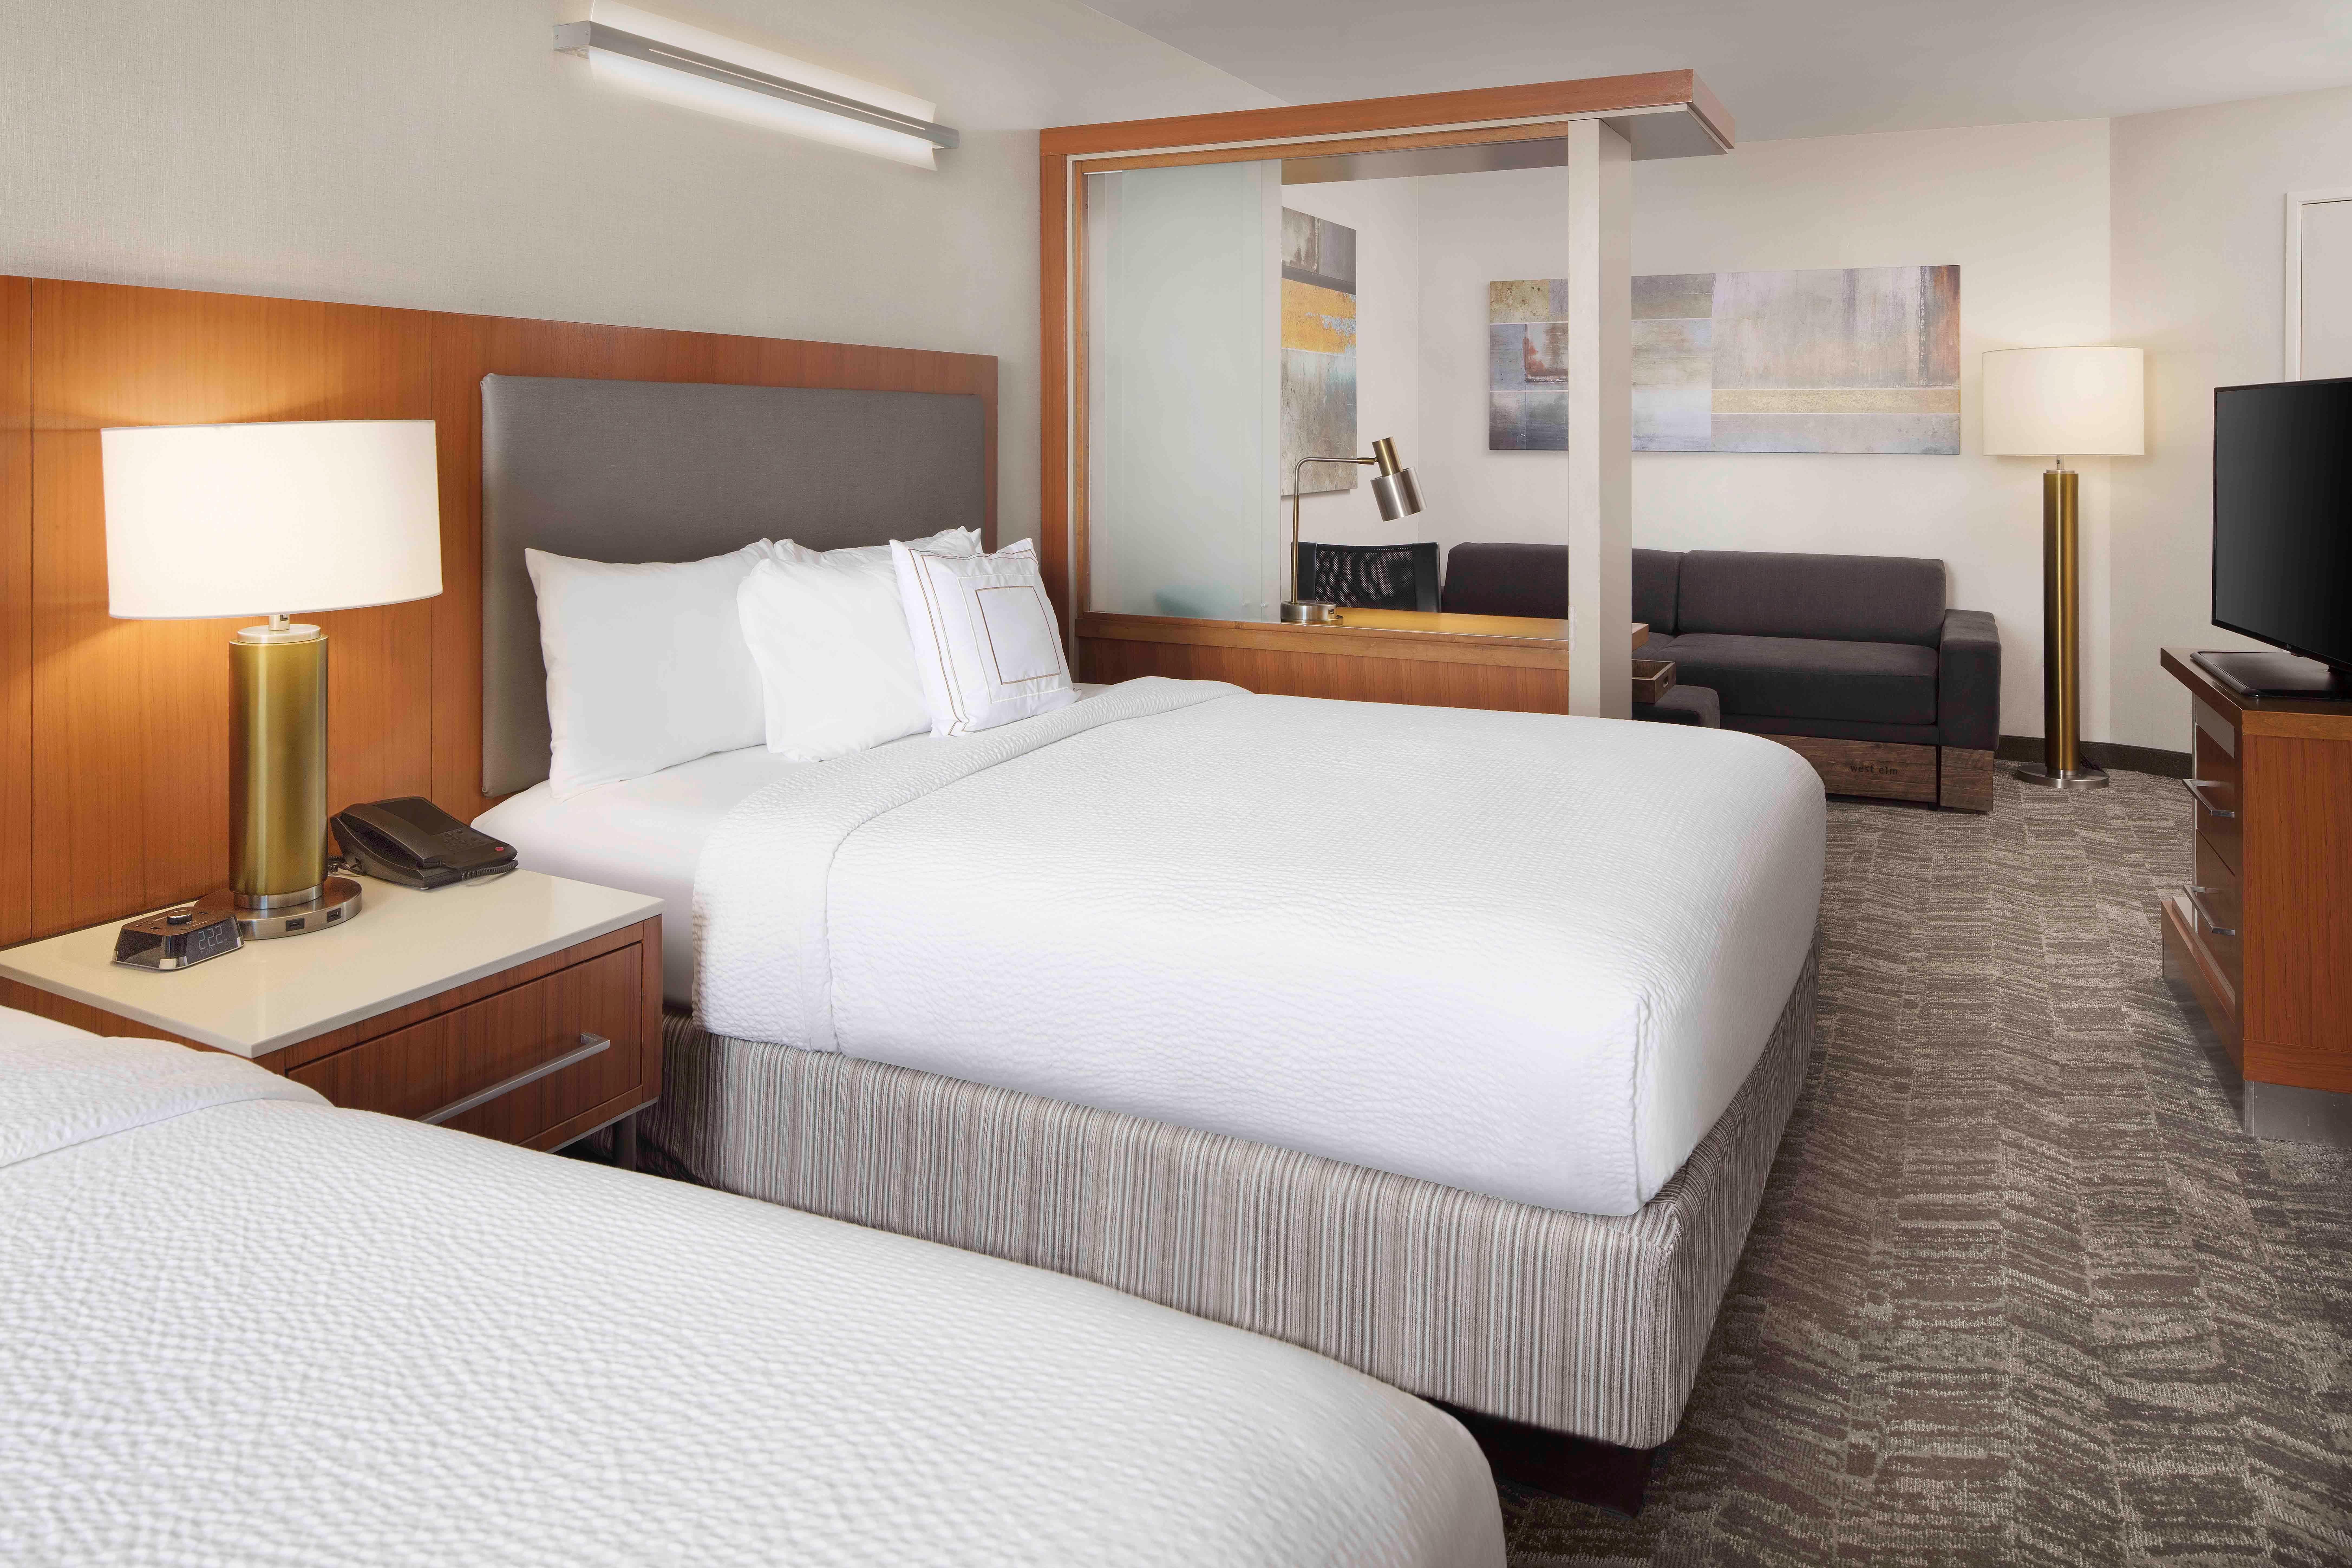 SpringHill Suites by Marriott Indianapolis Downtown image 17